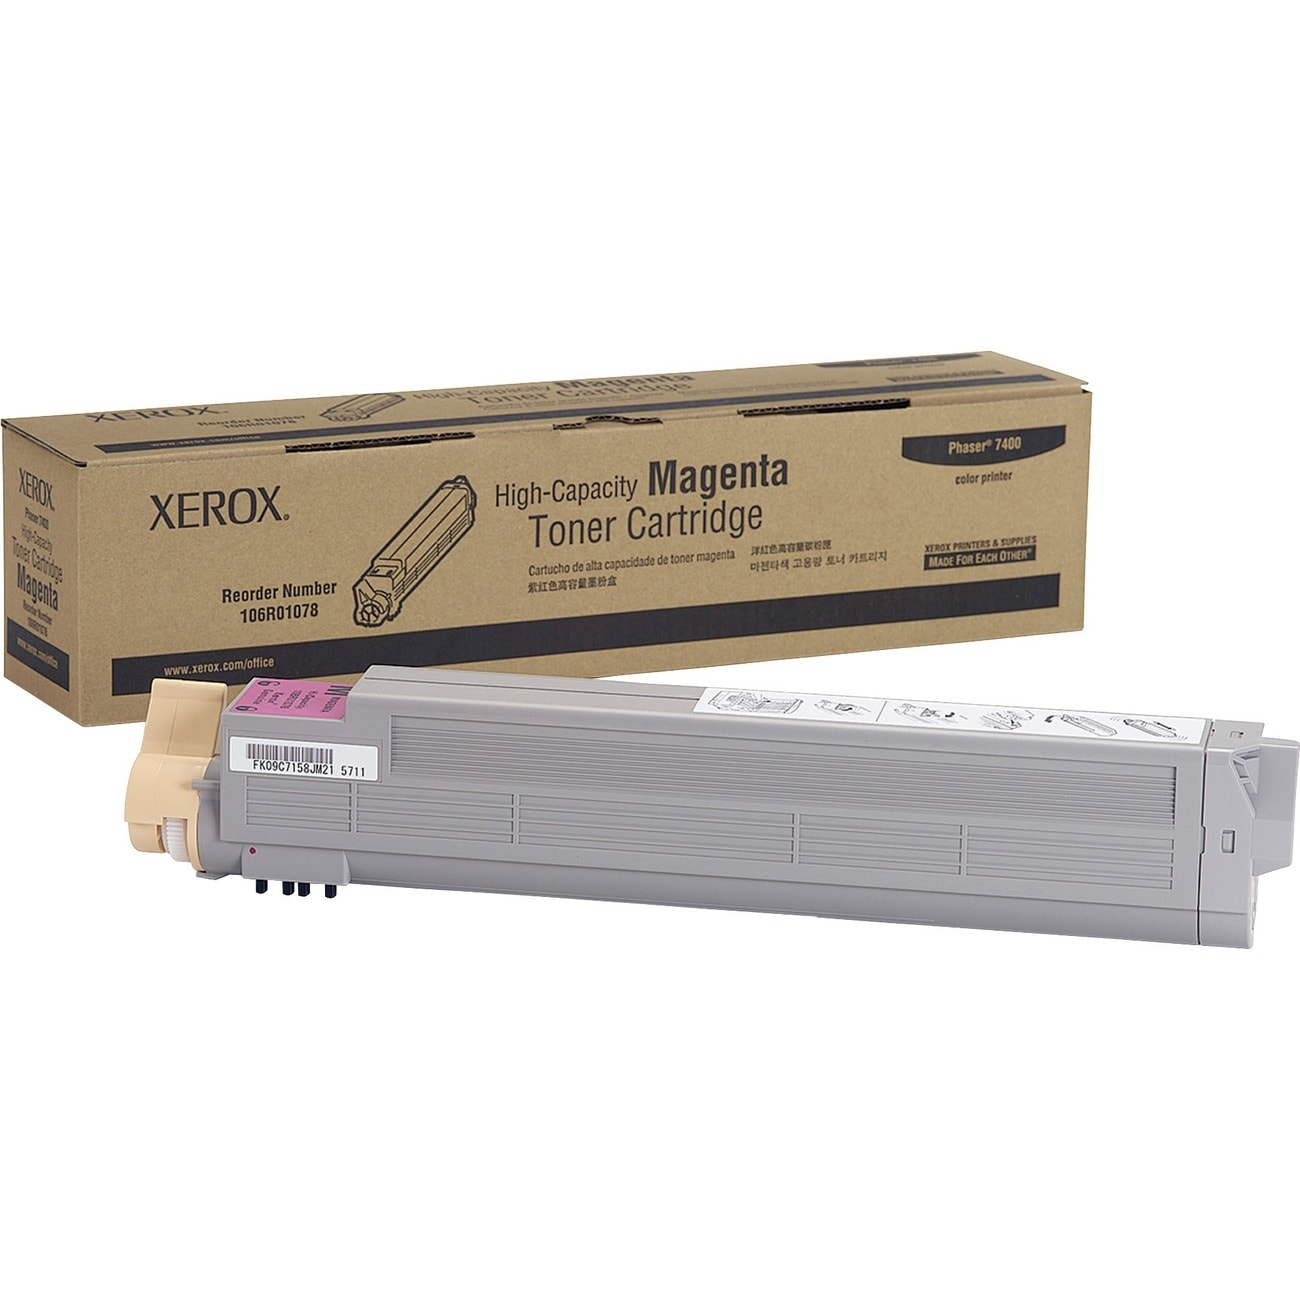 Xerox Black/ Color High-capacity Toner Cartridge for Phazer 7400 - Thumbnail 0